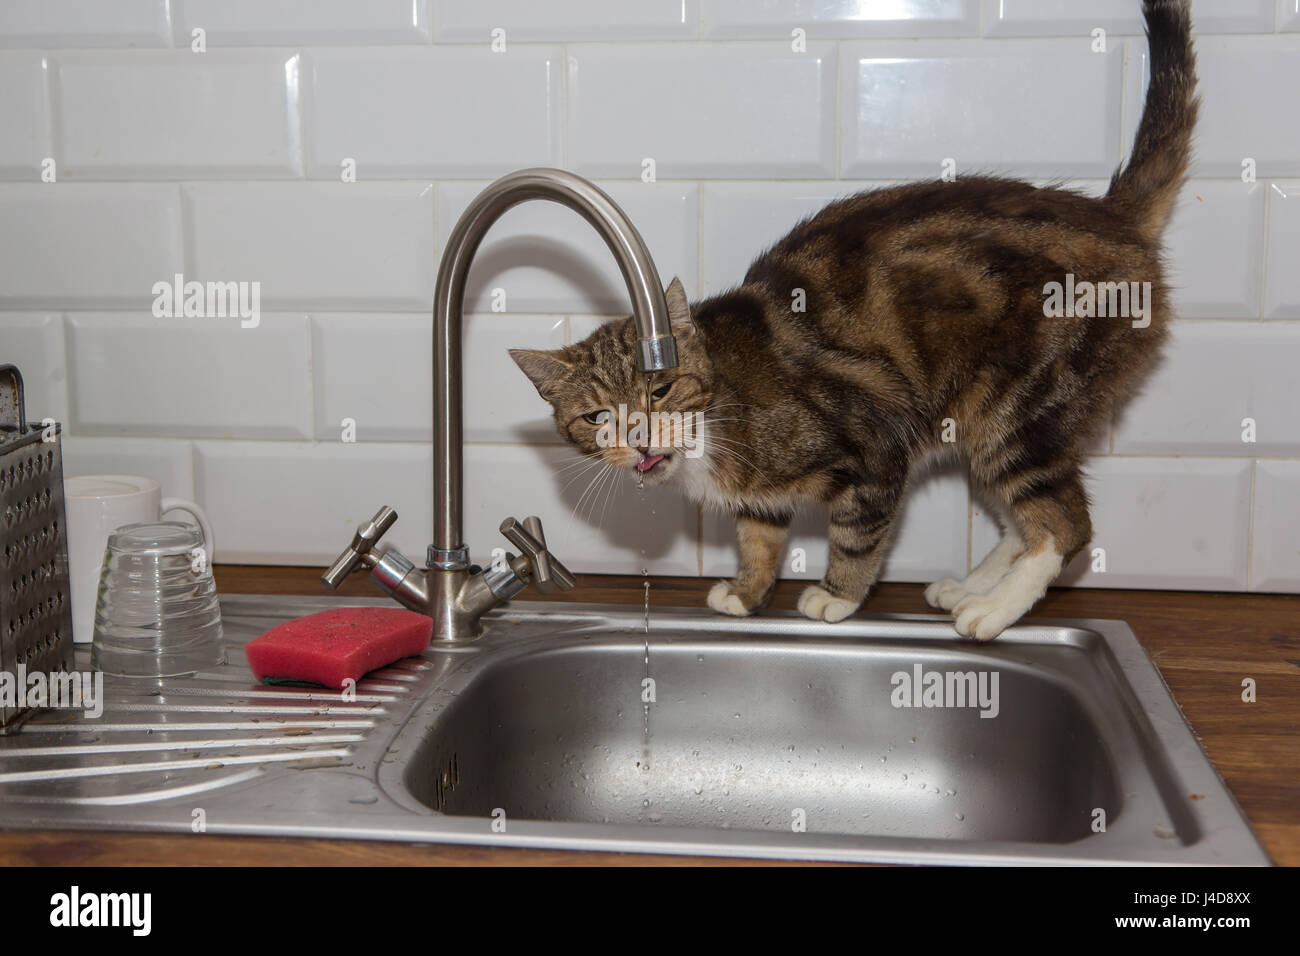 Cat drinks tap water Stock Photo: 140433970 - Alamy